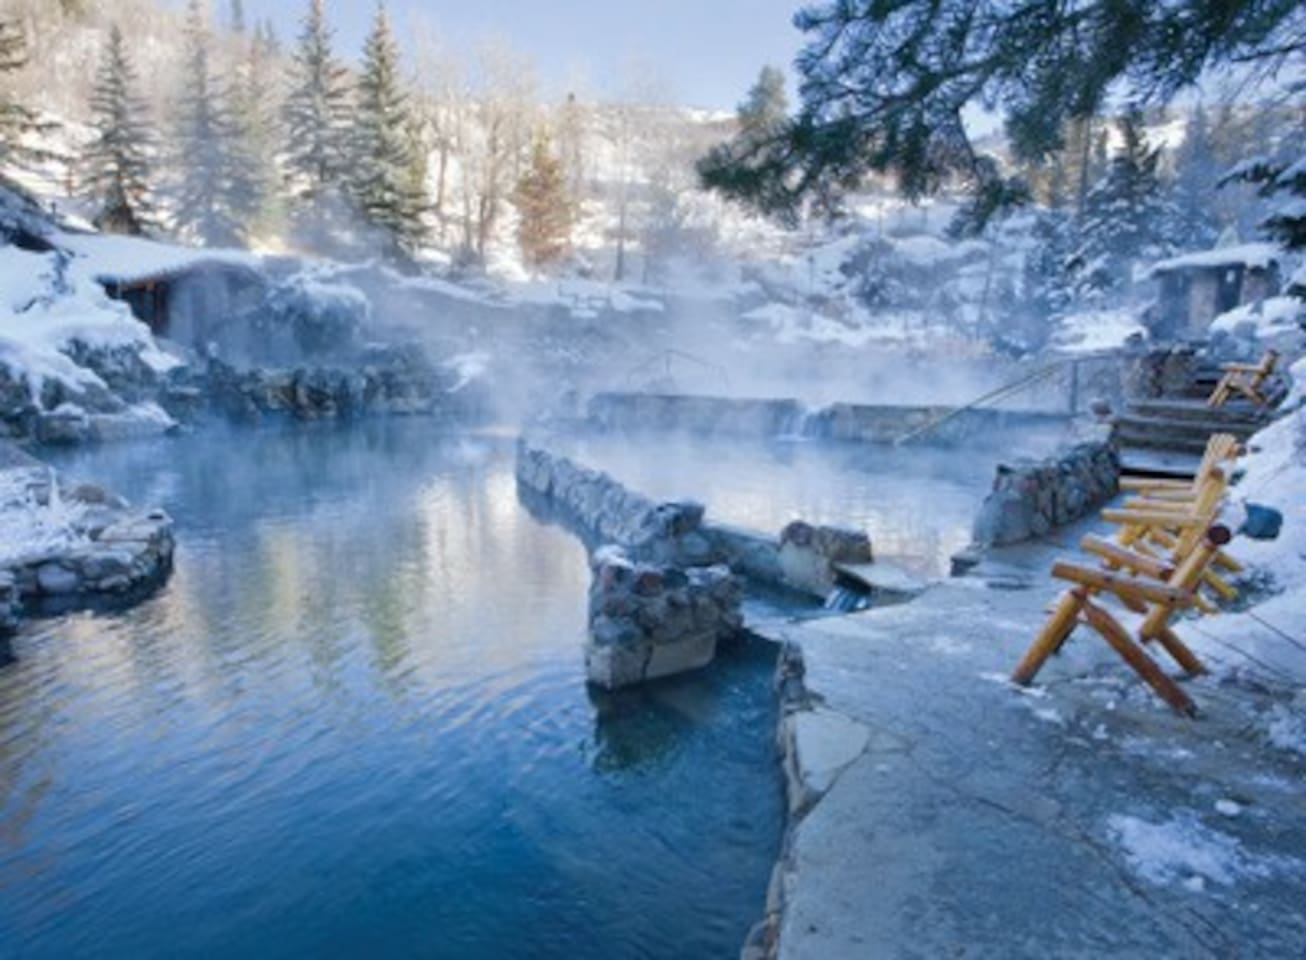 Nearby hot spring